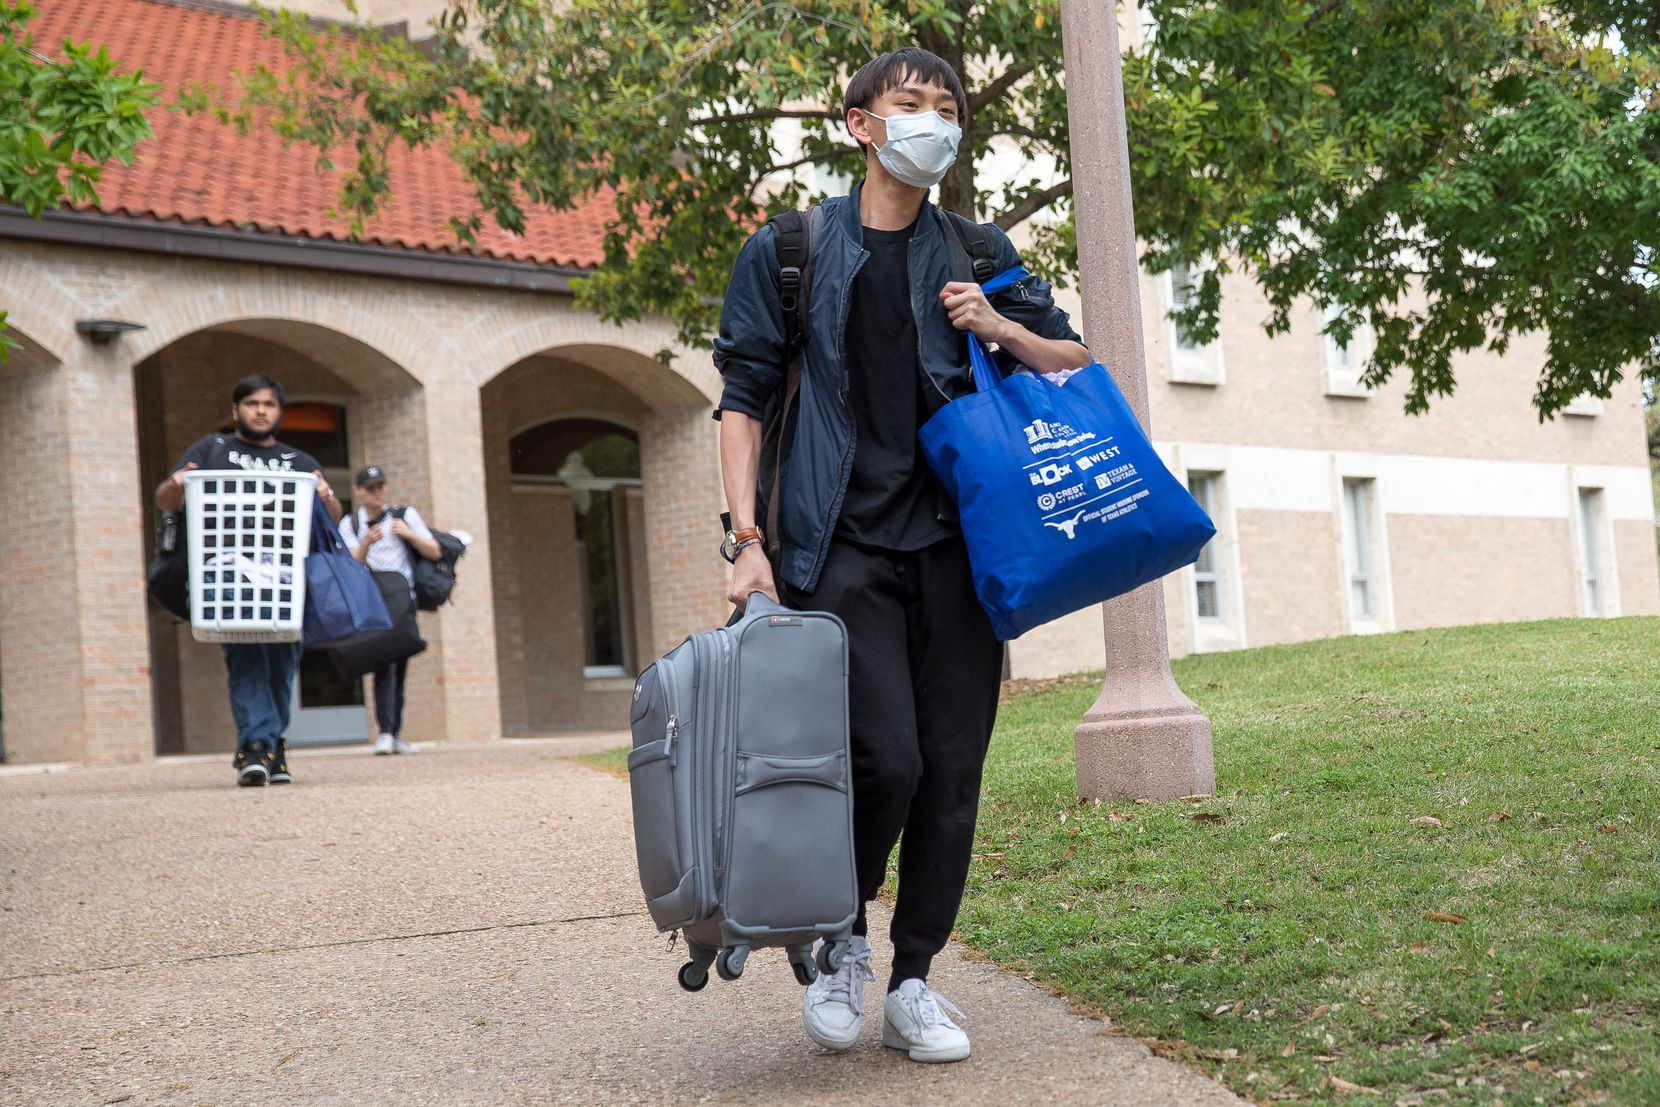 Chris Hsu, 19, a freshman at the University of Texas, moves out of Jester dormitory for a two week spring break on March 13, 2020. The University cancelled classes on Friday, March 13th and students are advised the break may be extended past two weeks. (Julia Robinson/Special Contributor)